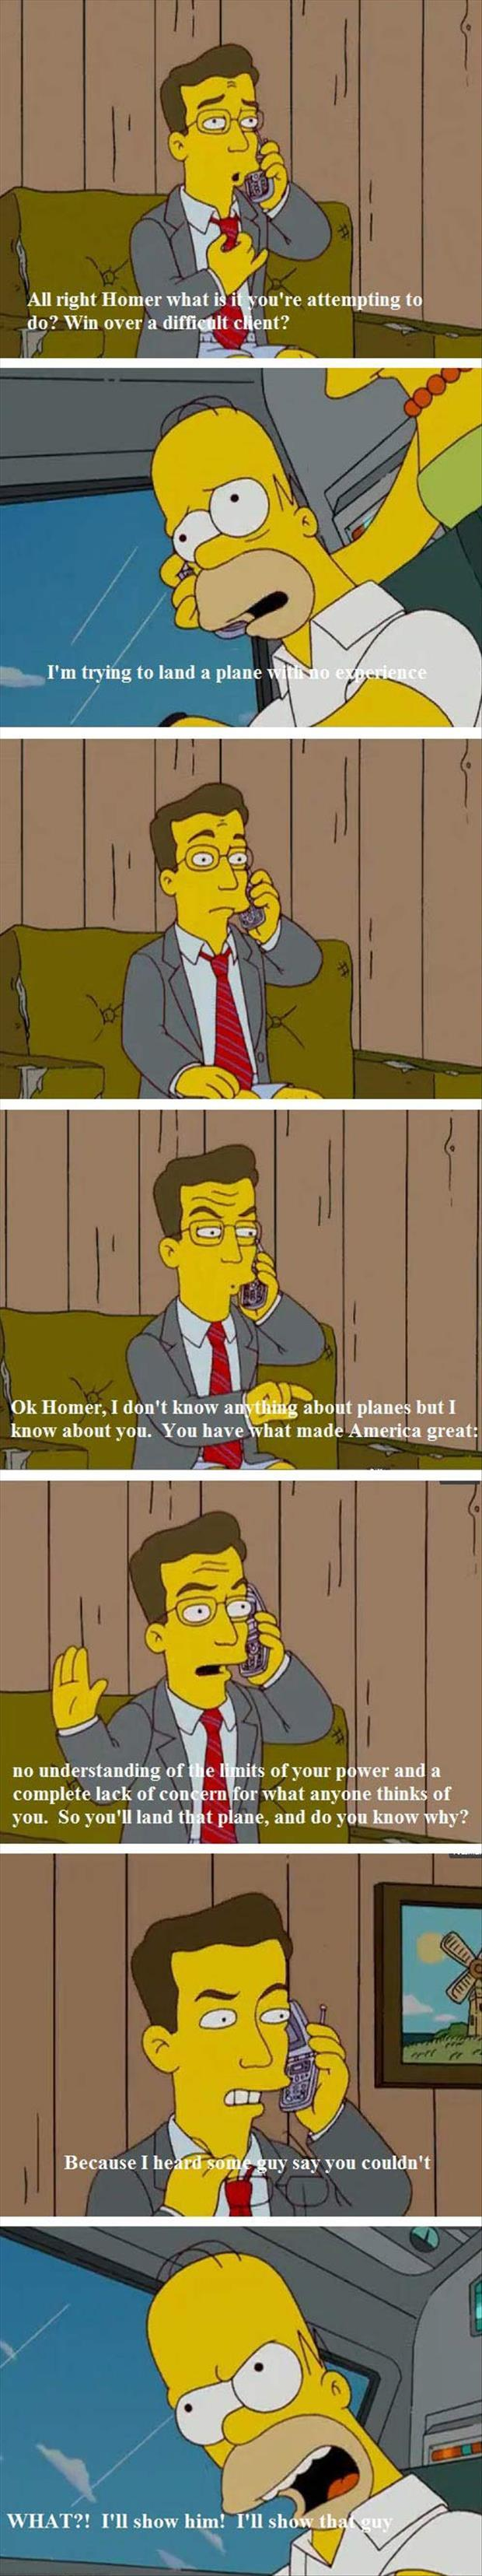 homer simpson funny pictures